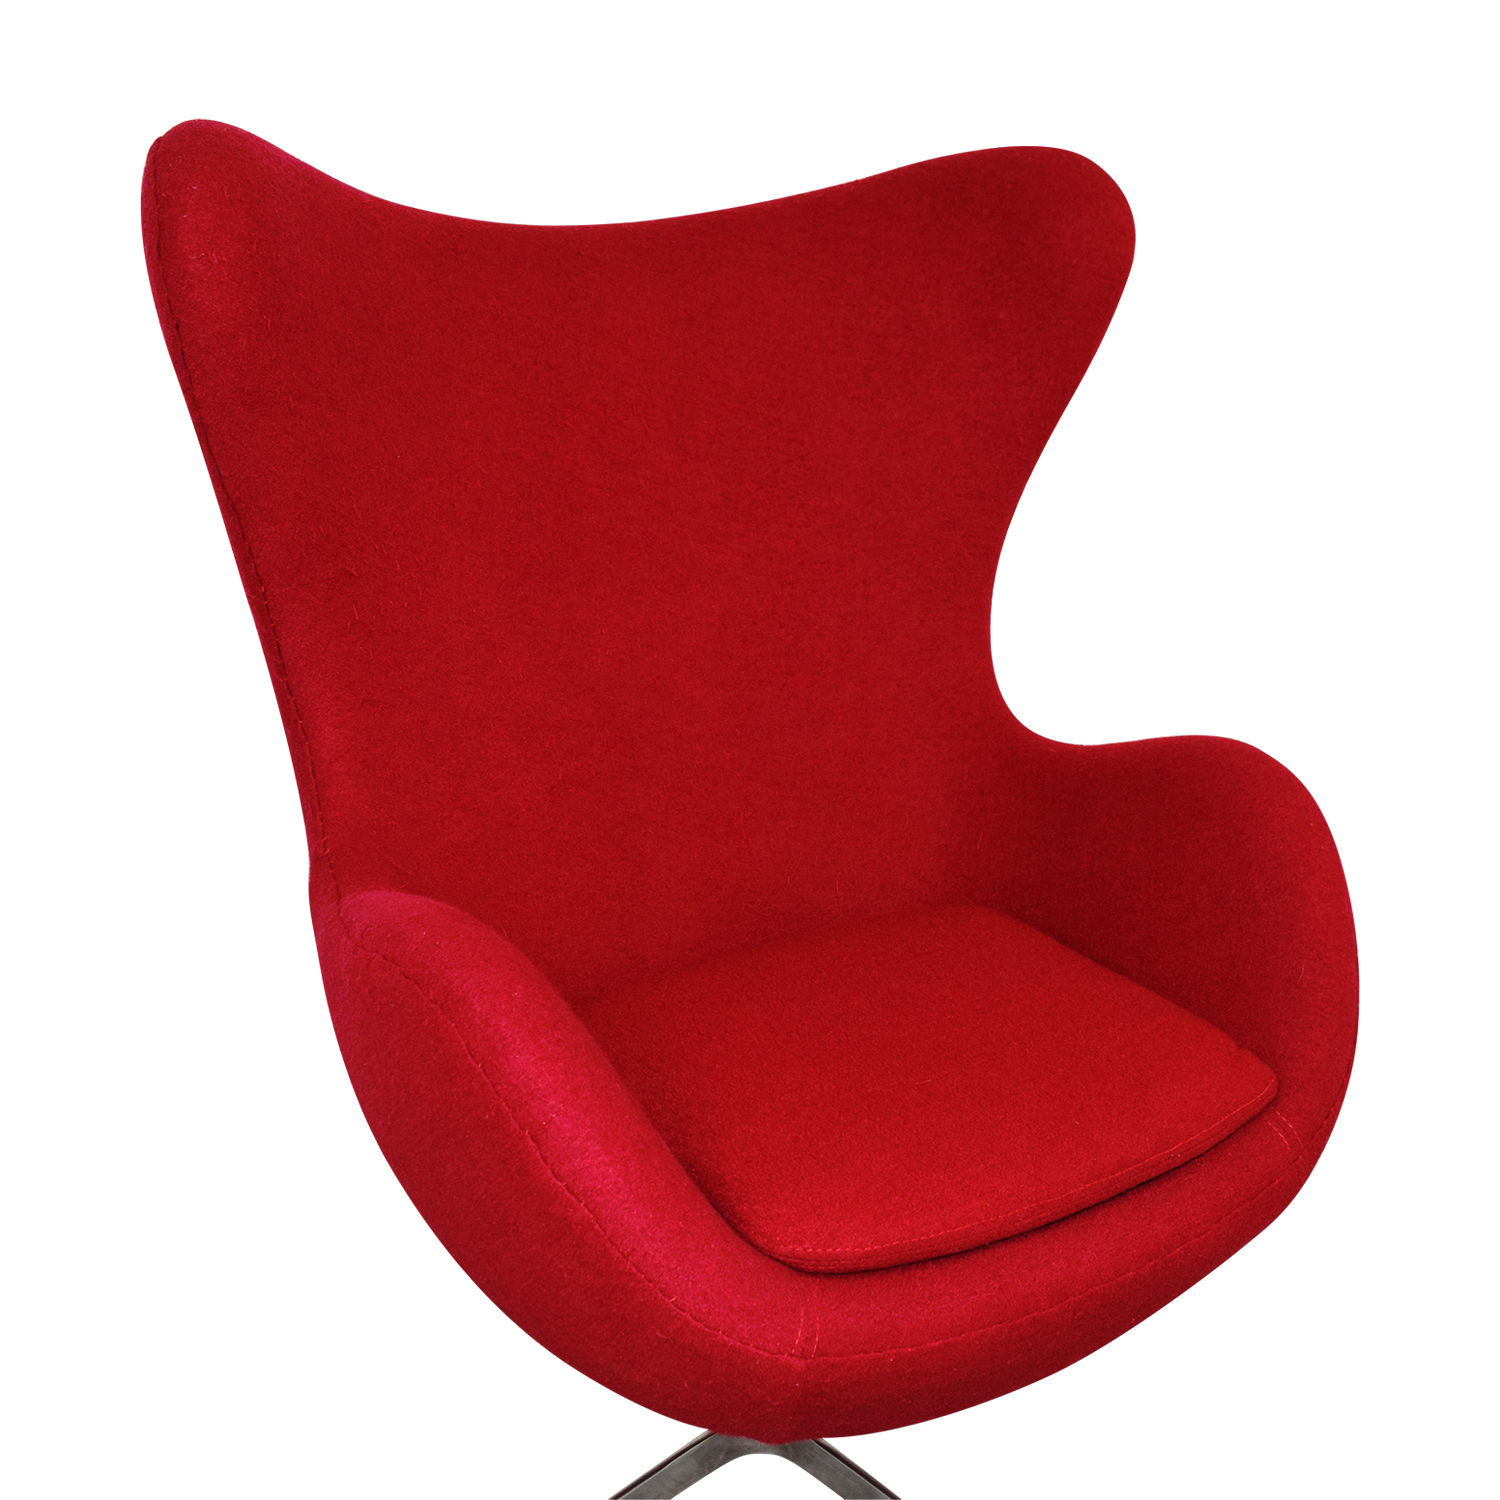 egg chairs for sale massage chair relief 72 off red and chrome shop accent